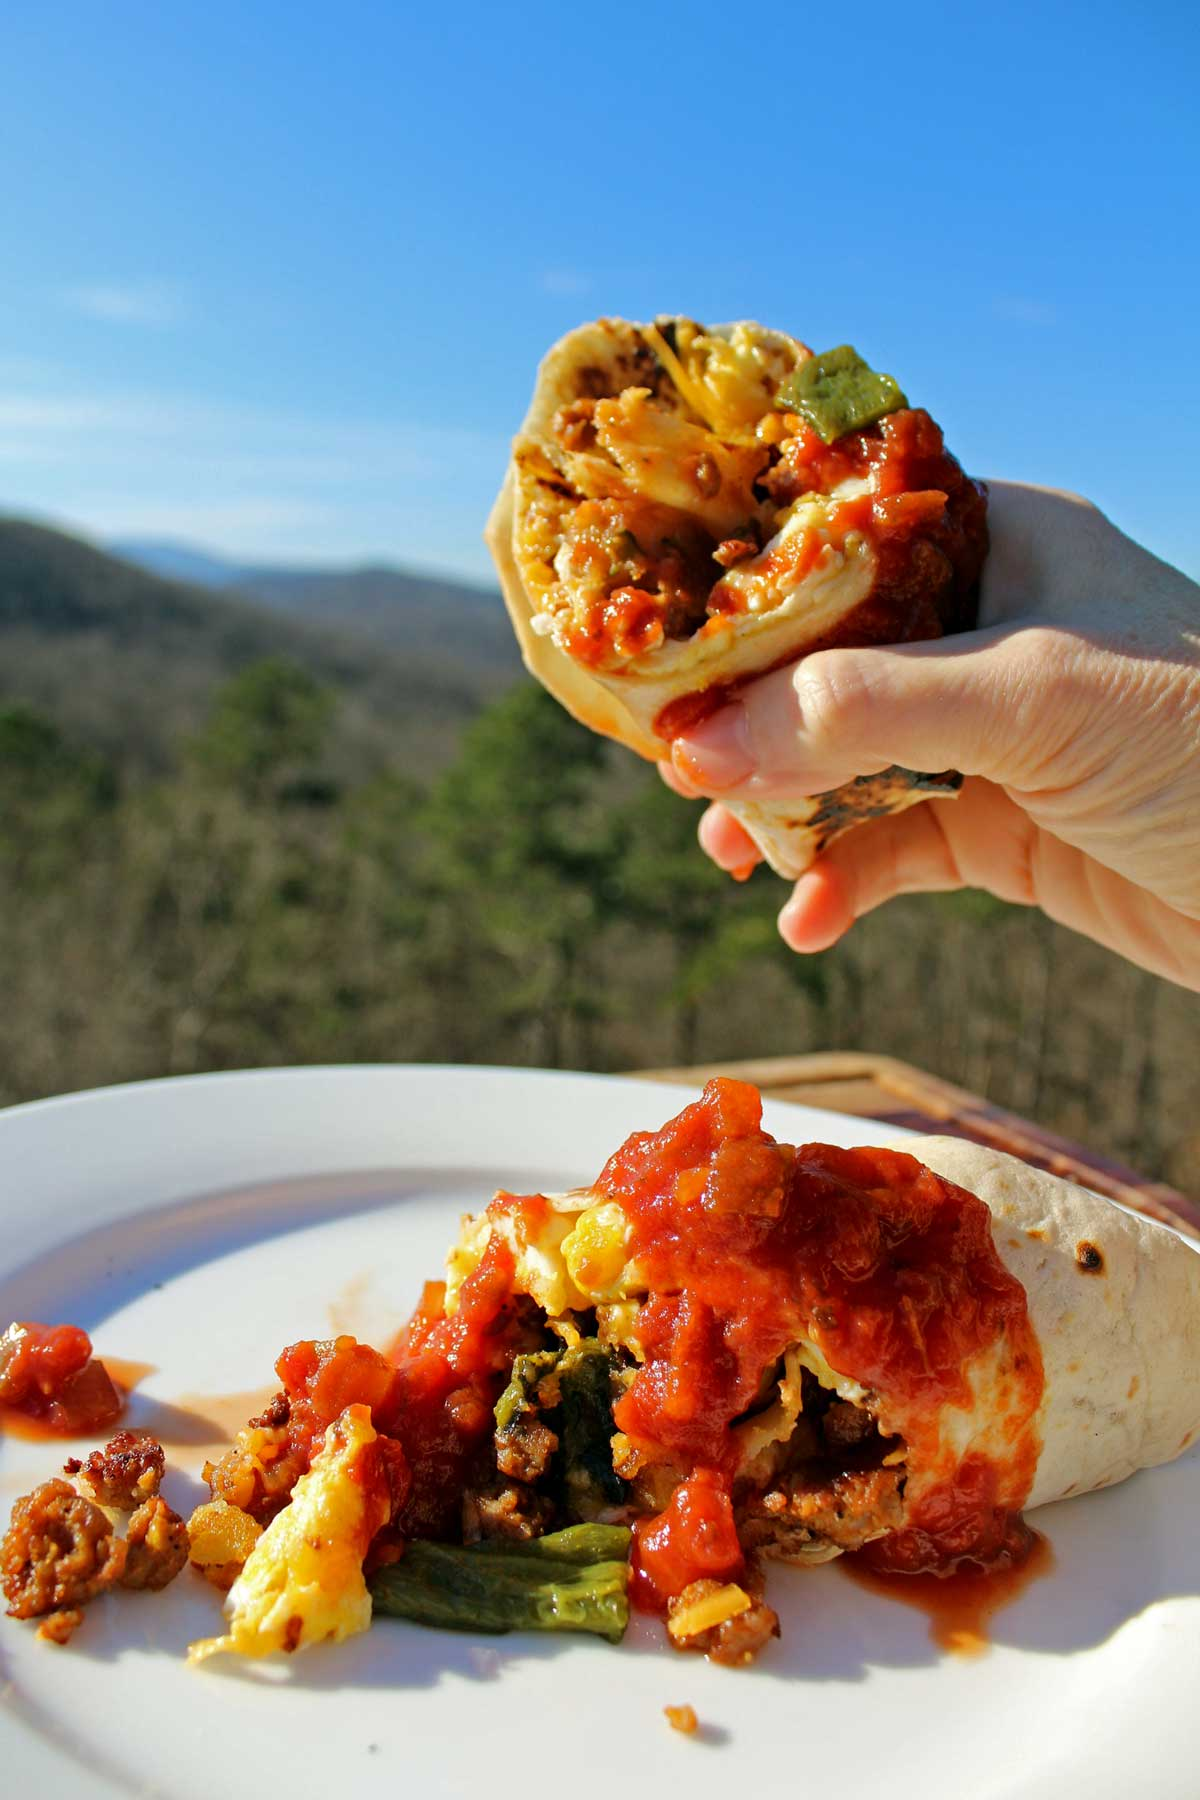 breakfast burrito with hand holding one half in front of the mountain view